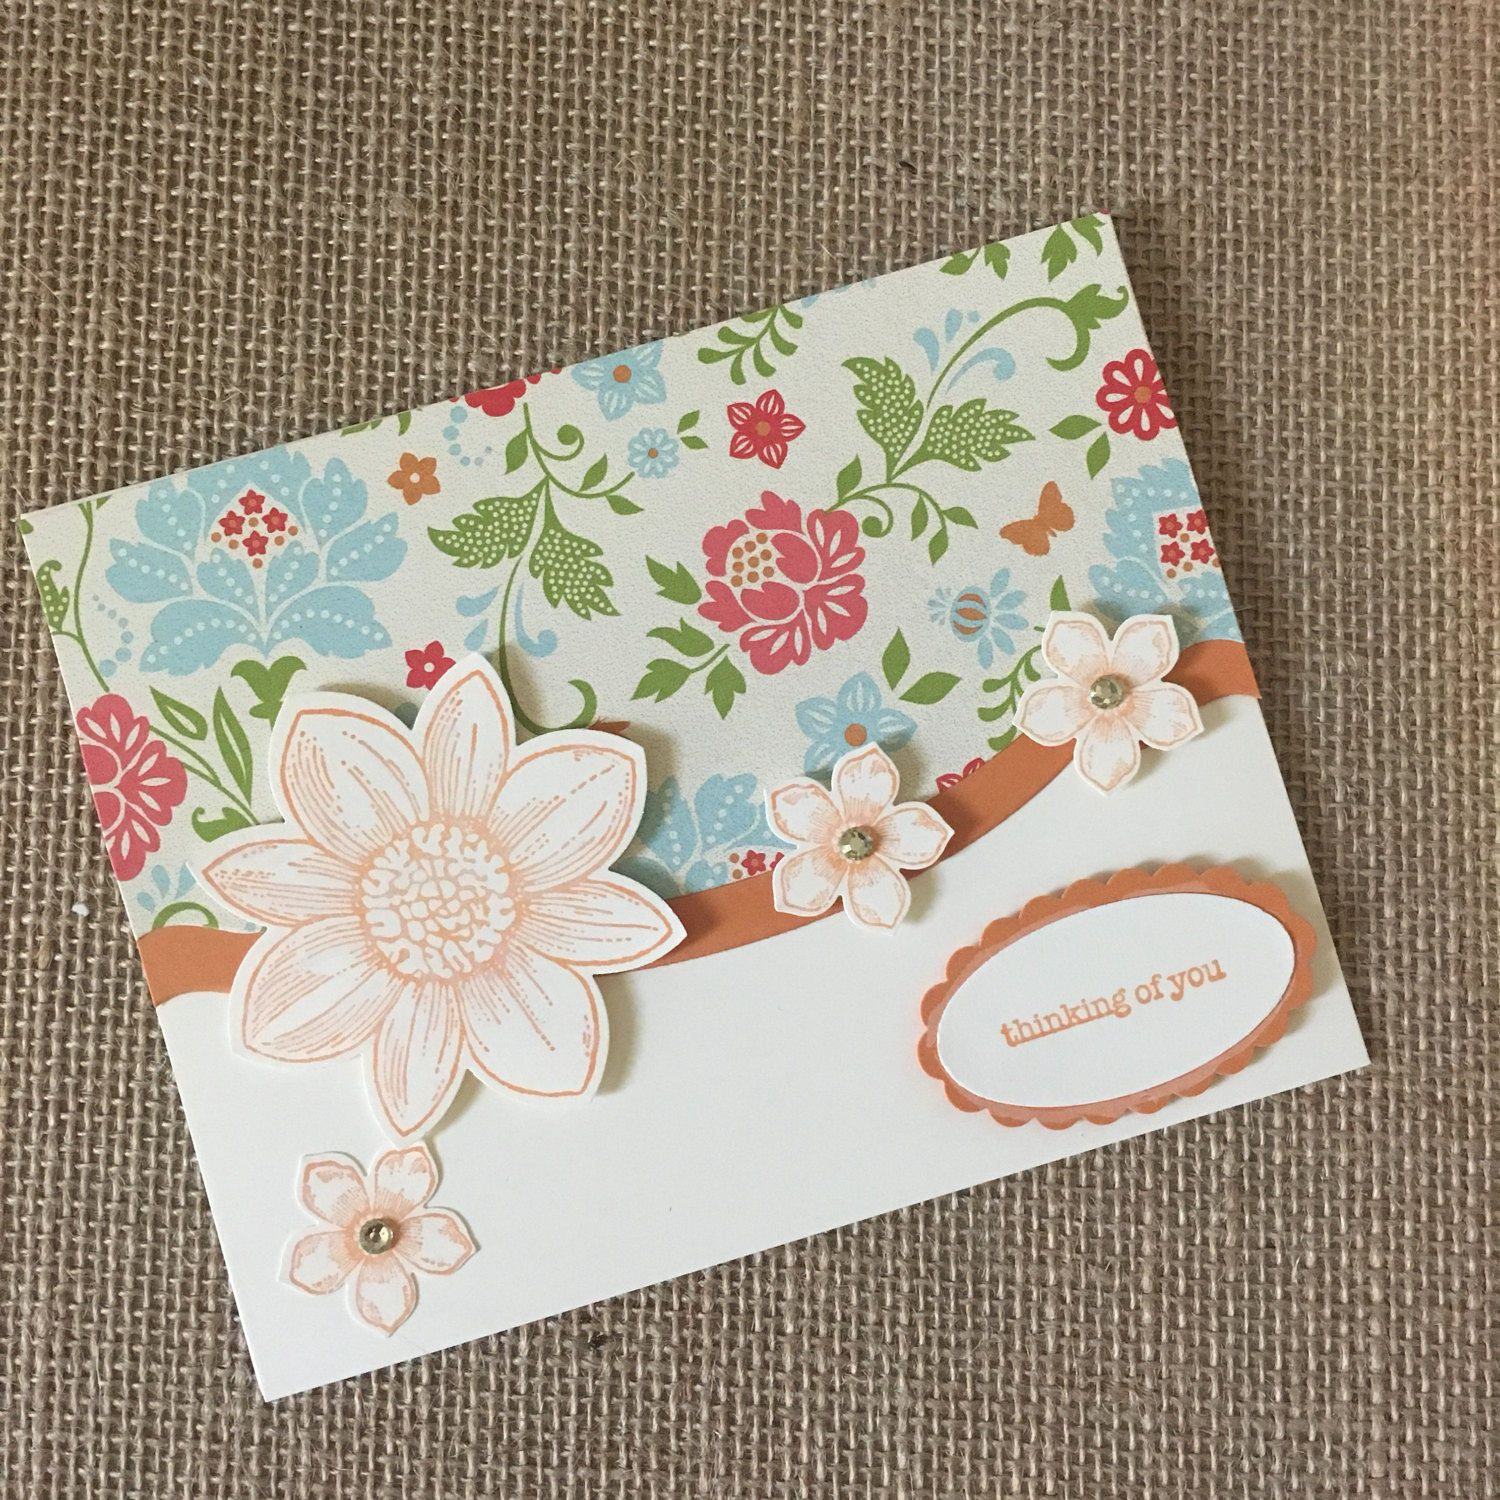 Thinking Of You Card Handmade Greeting Cards Stampin Up Greeting